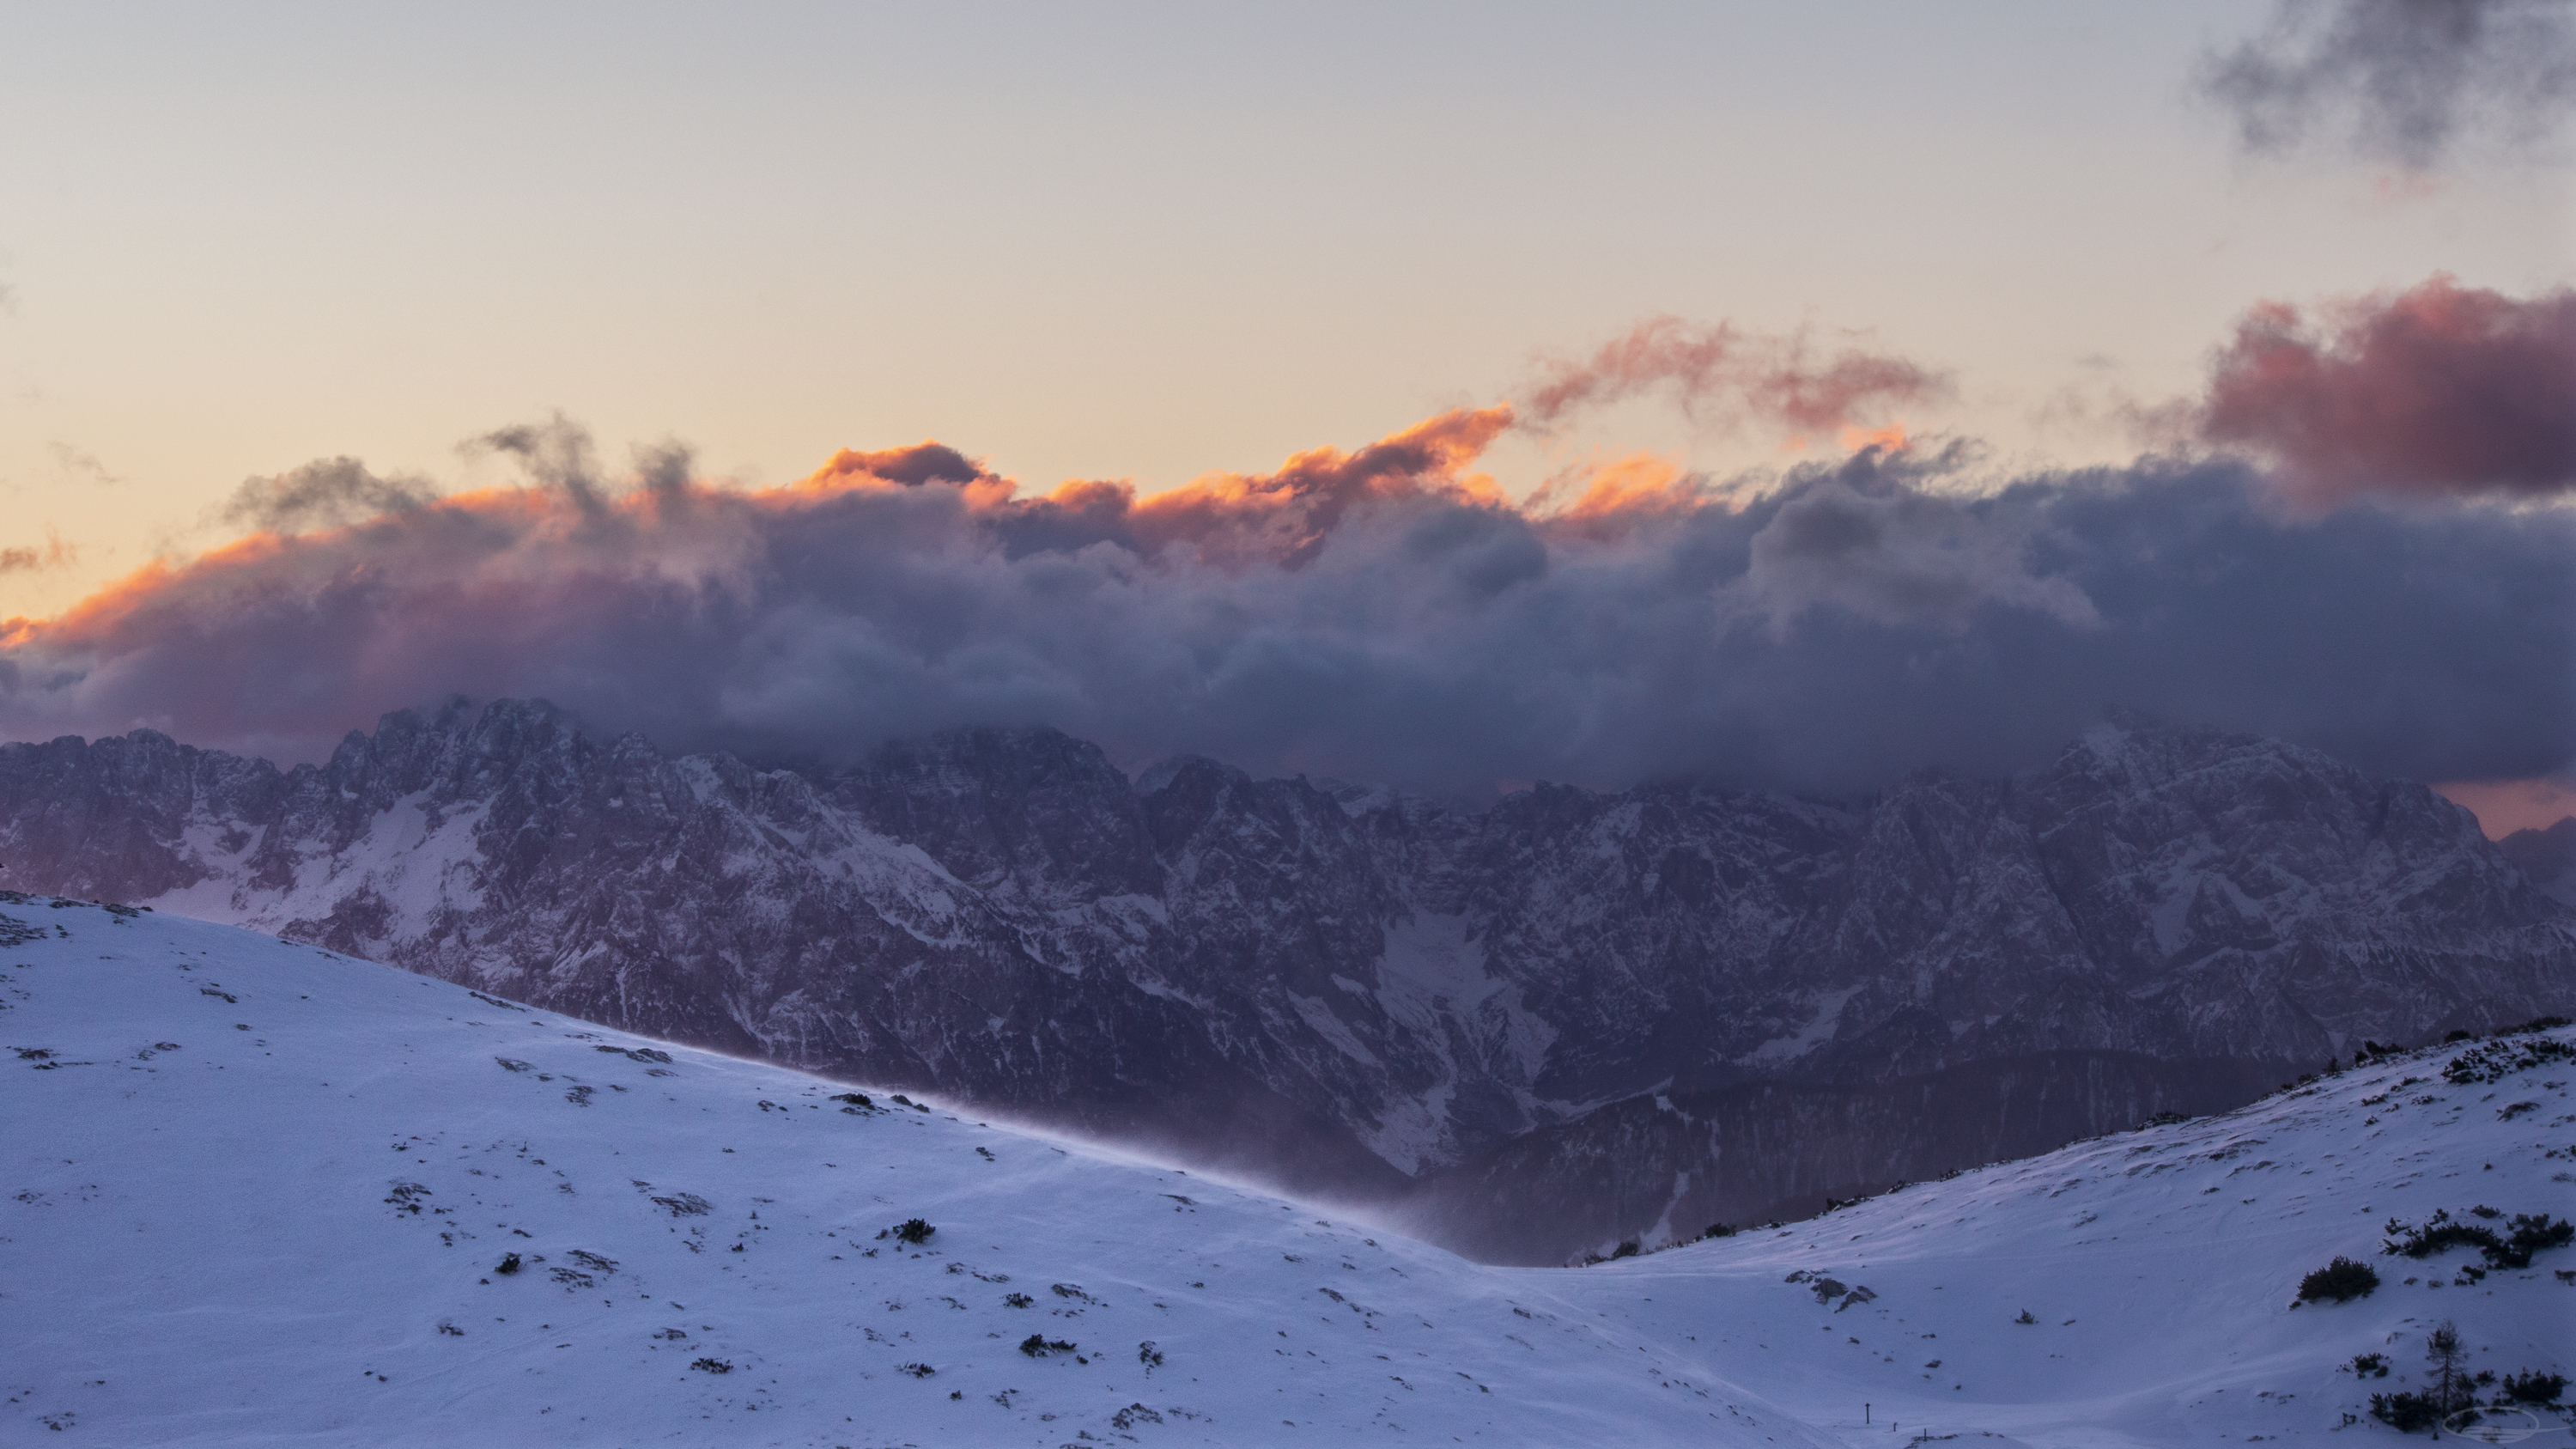 Sunrise View from the Dobratsch Mountain - view south to the Karawank mountain range